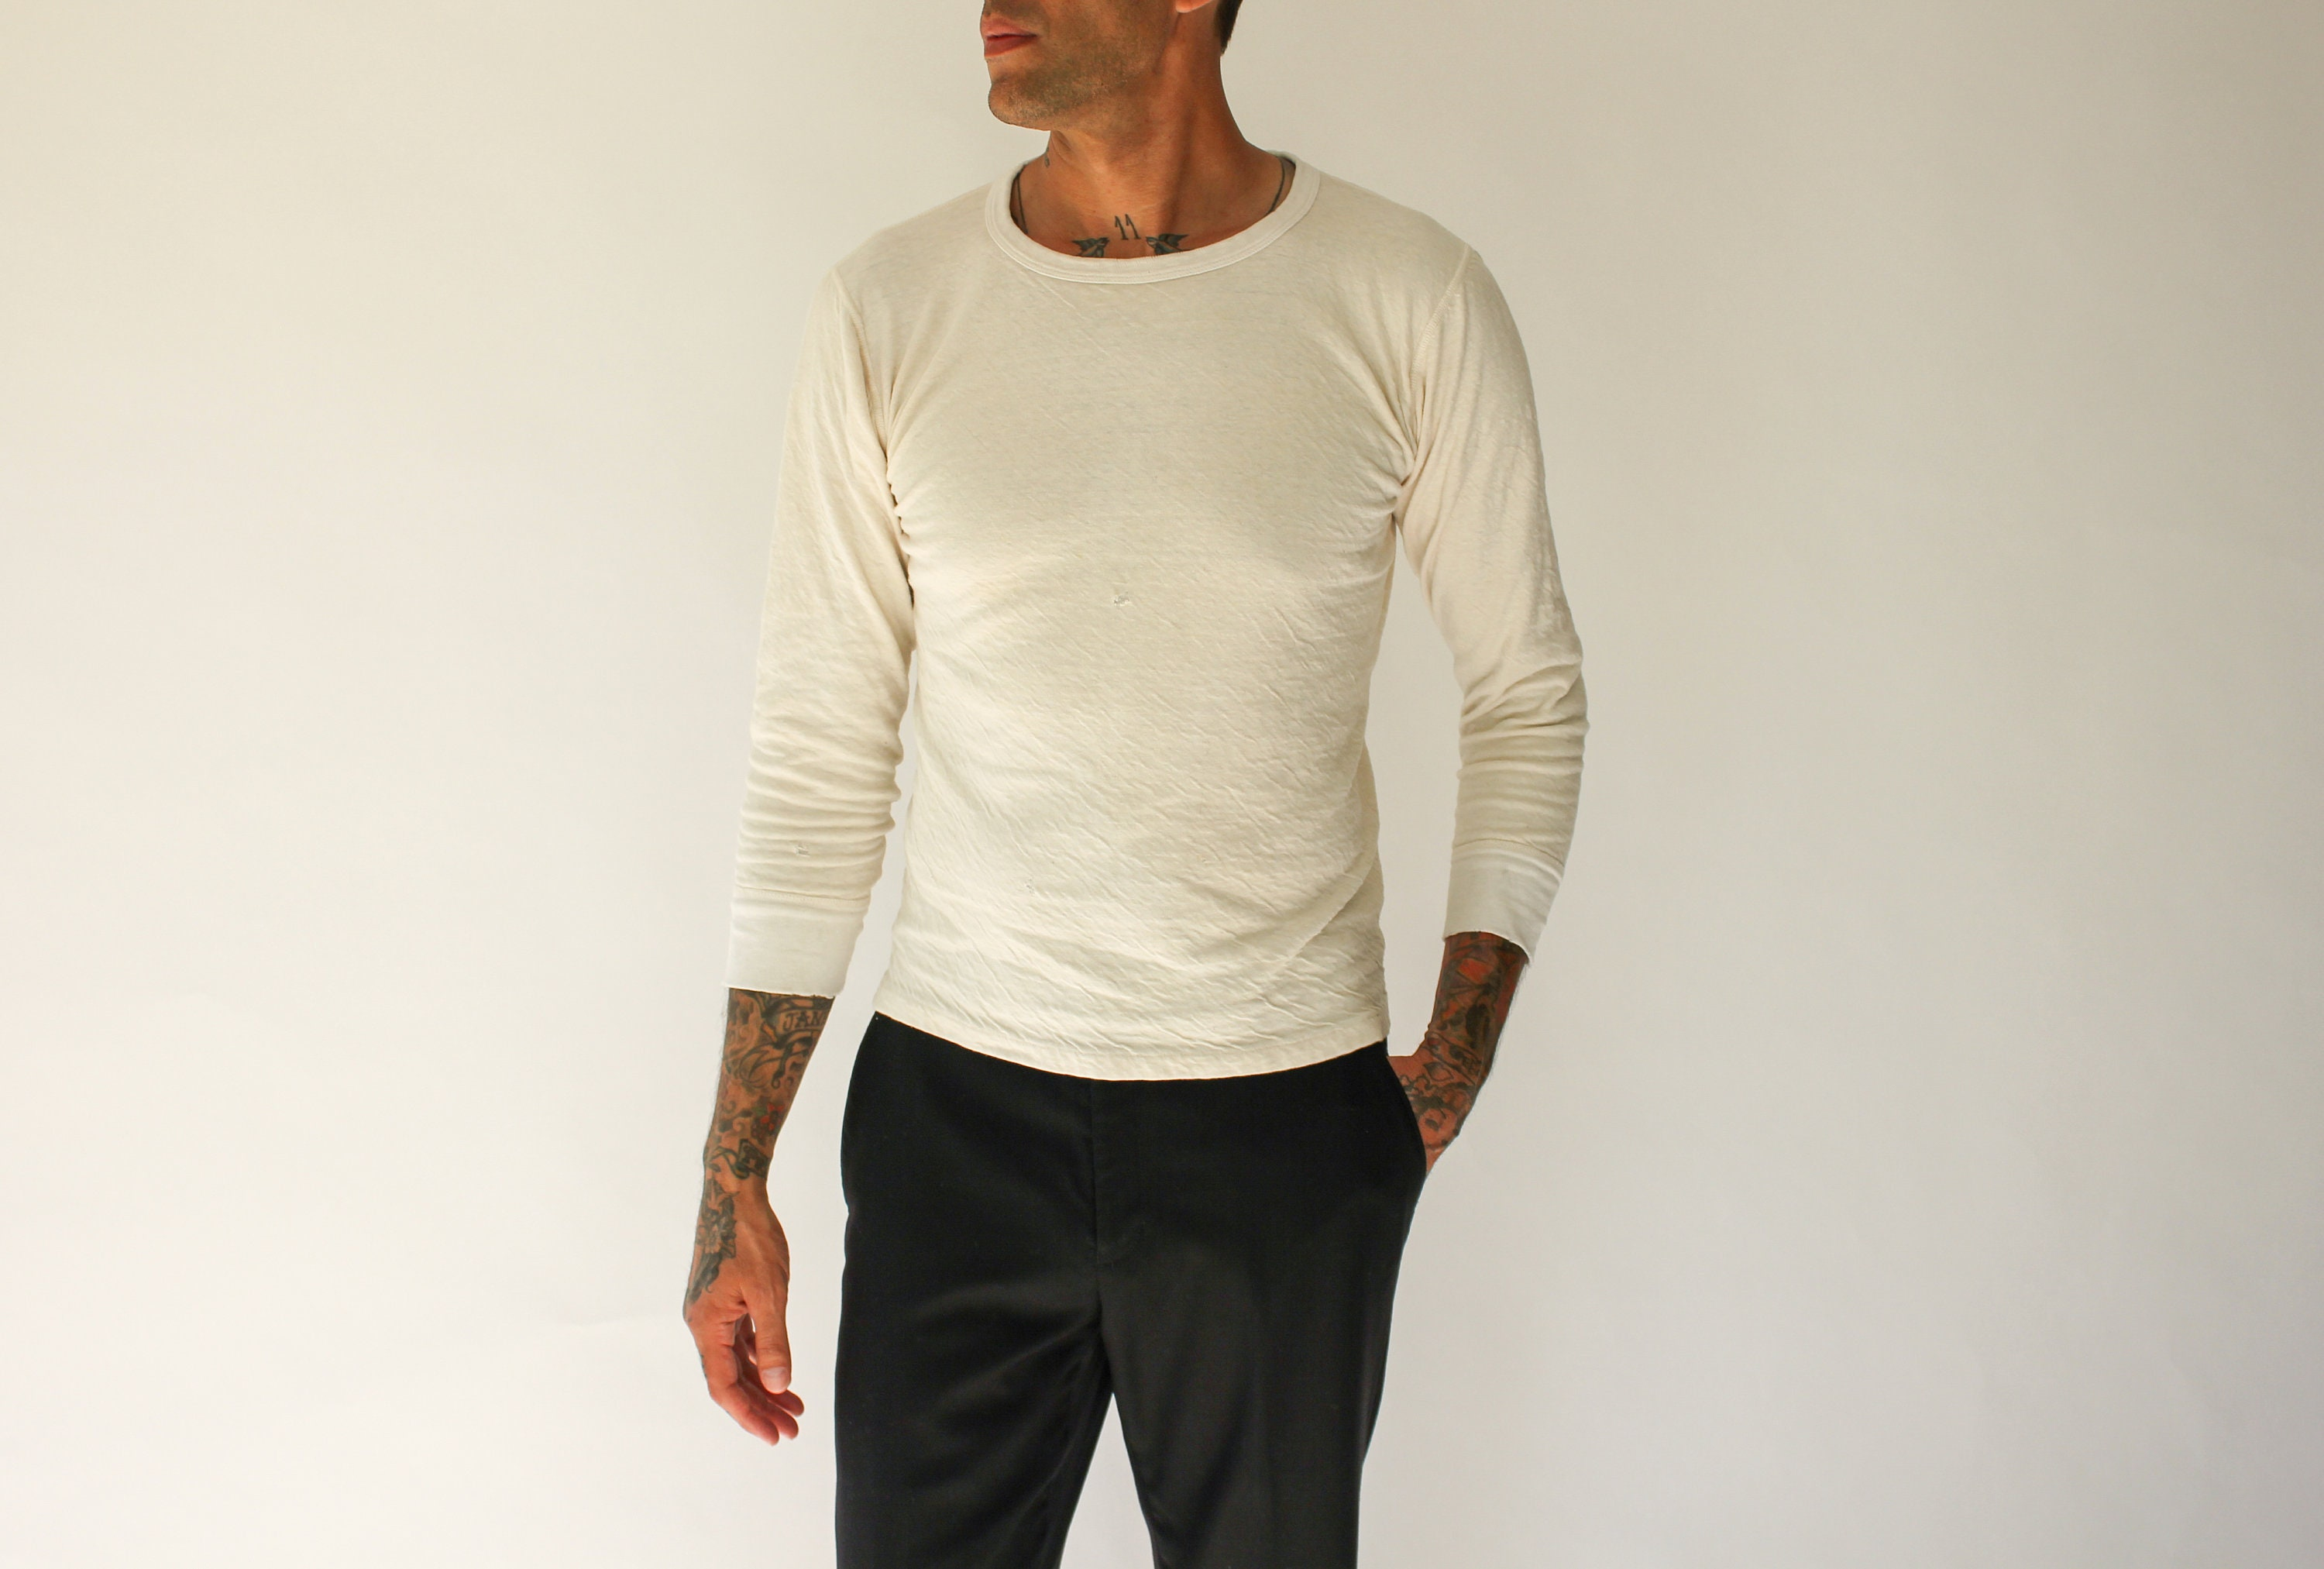 1970s Mens Shirt Styles – Vintage 70s Shirts for Guys Vintage 70S Lee Tri Blend Destroyed Cream Thermal Shirt  Made in Usa Cotton, Wool, Nylon 1970S Paper Thin, Soft Natural Tee $22.95 AT vintagedancer.com